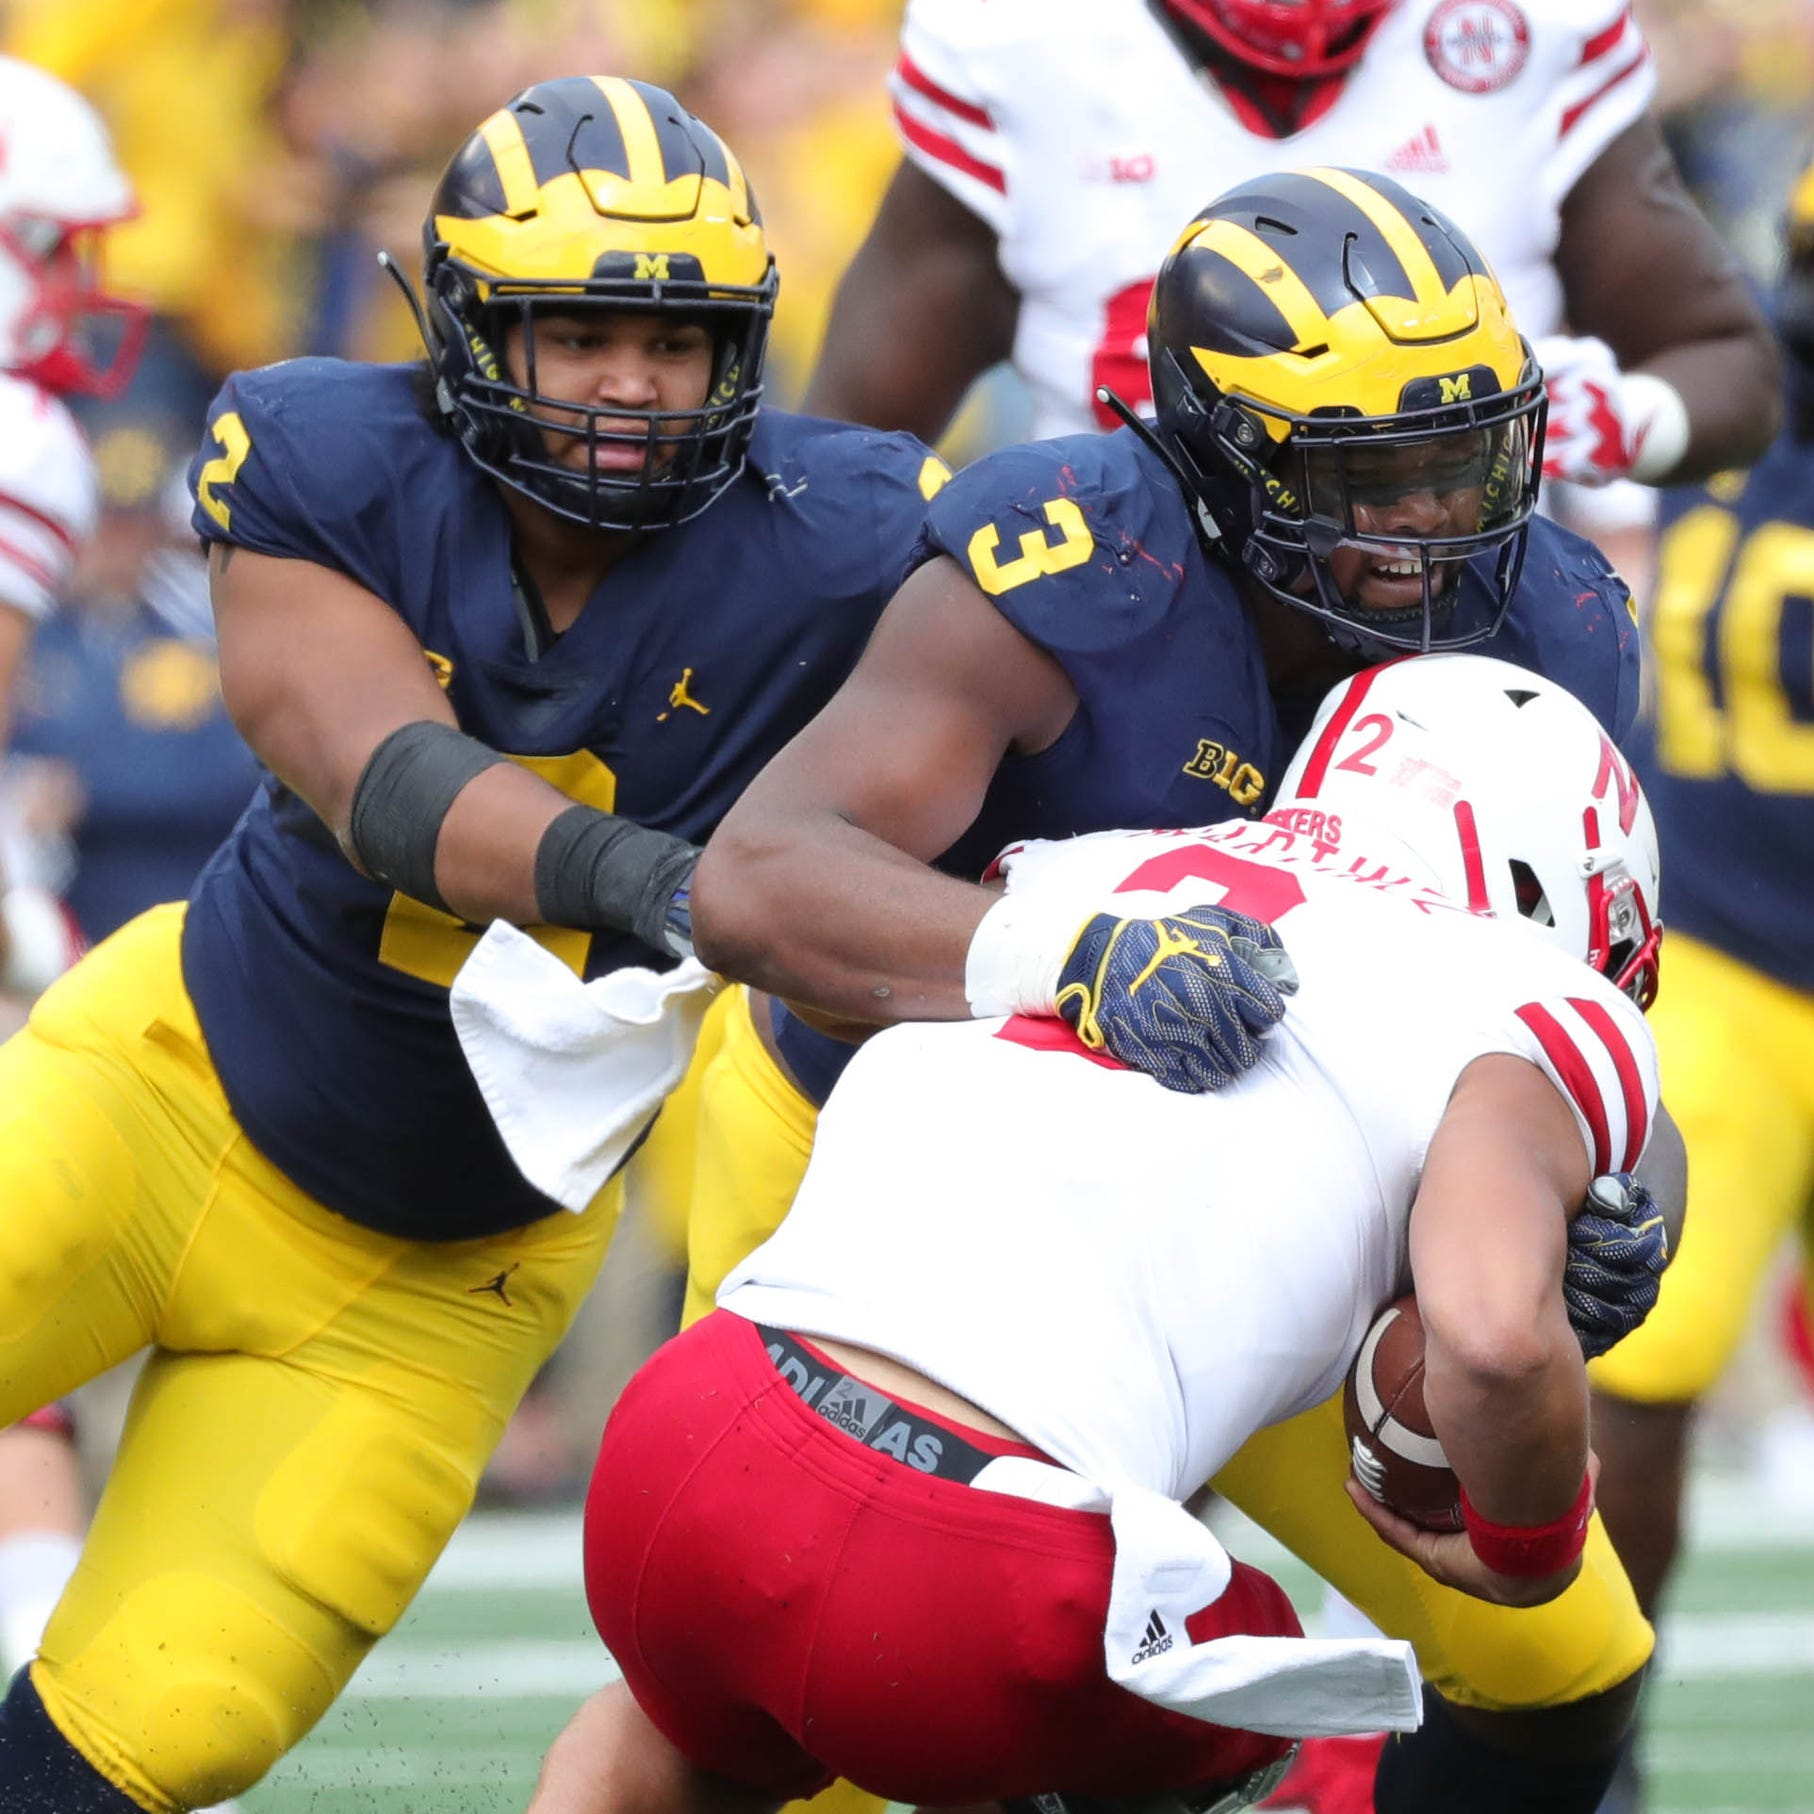 Michigan football's Rashan Gary arm injury? 'Nah ... everything's good'